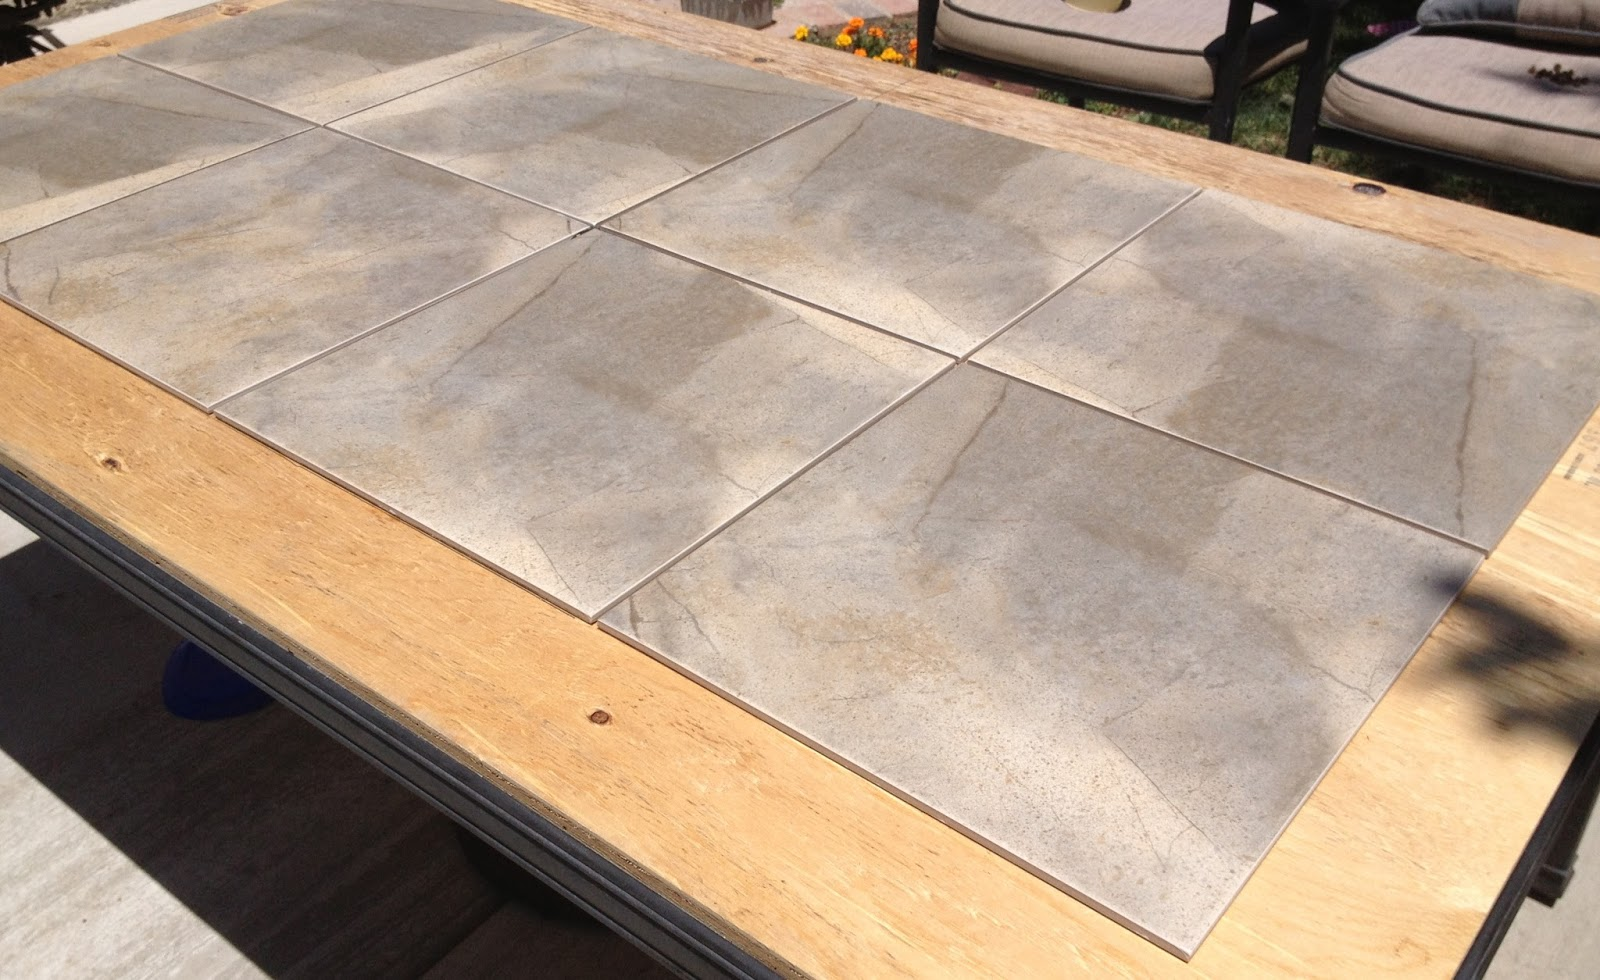 Beyond The Craft Room DIY Tiled Patio Table